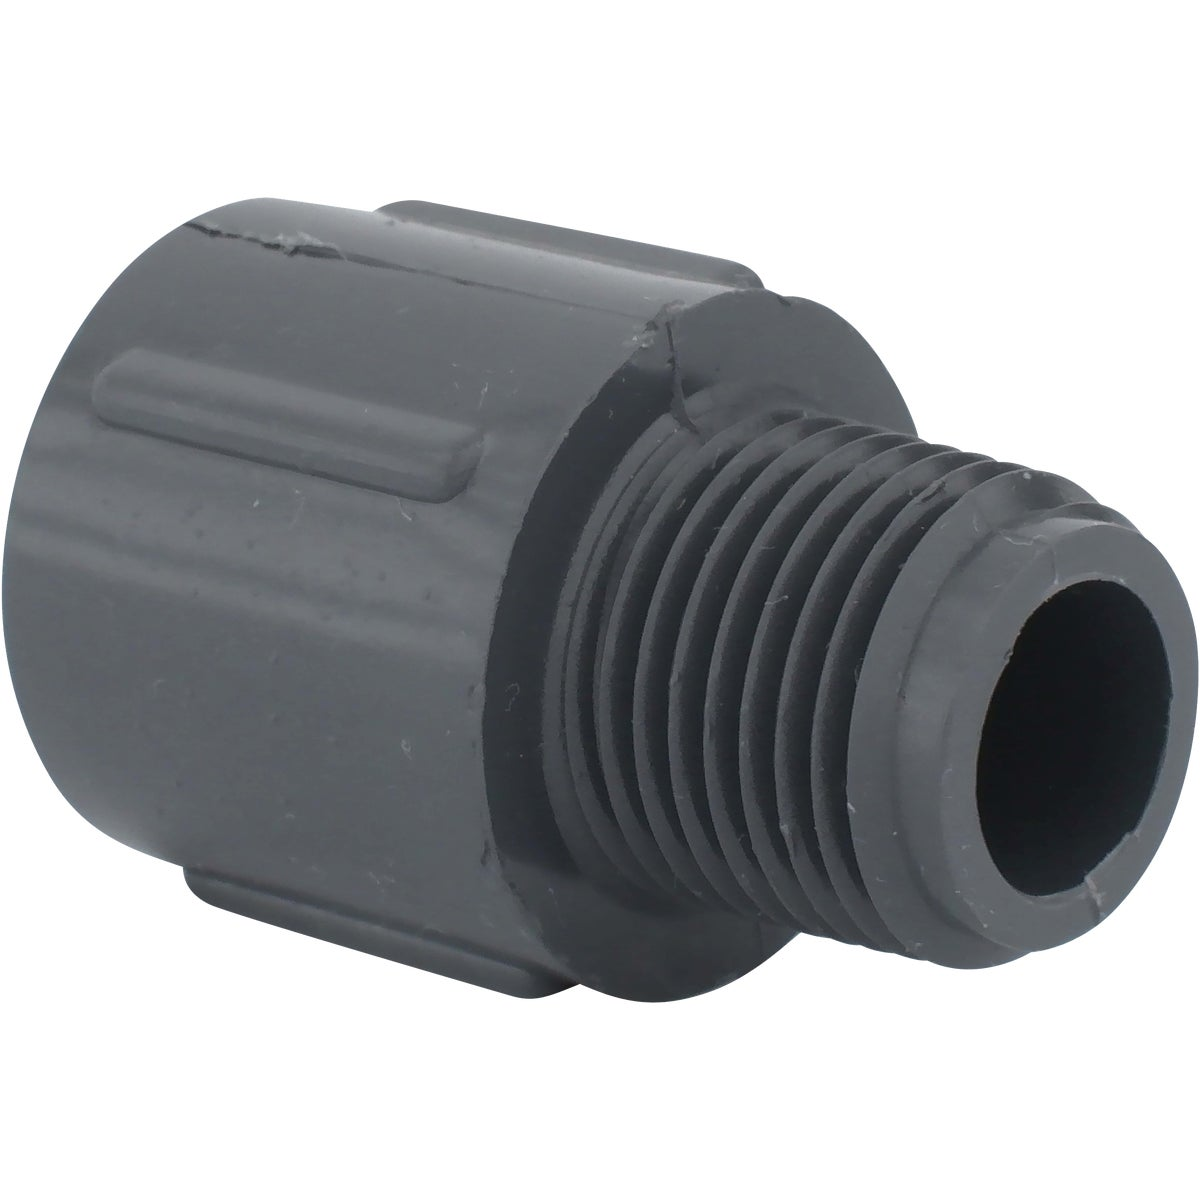 "1/2"" SCH80 MALE ADAPTER - 304058 by Genova Inc"